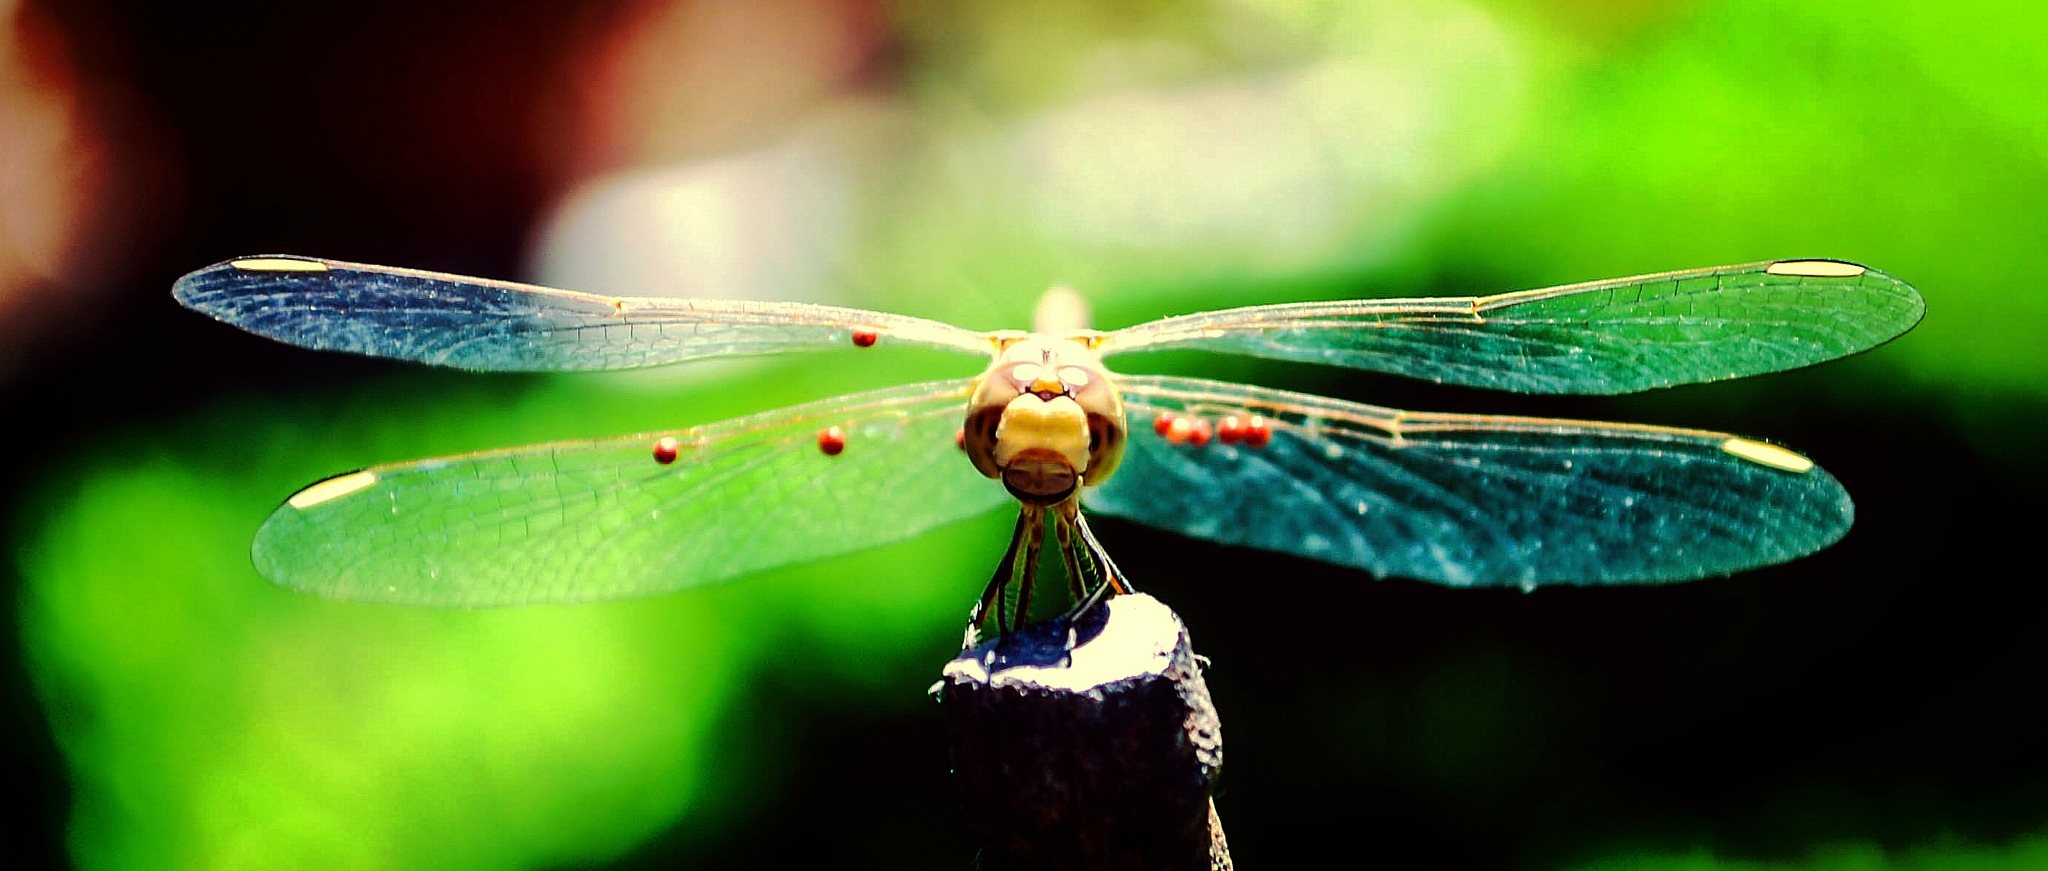 Dragonfly by Alvina S.